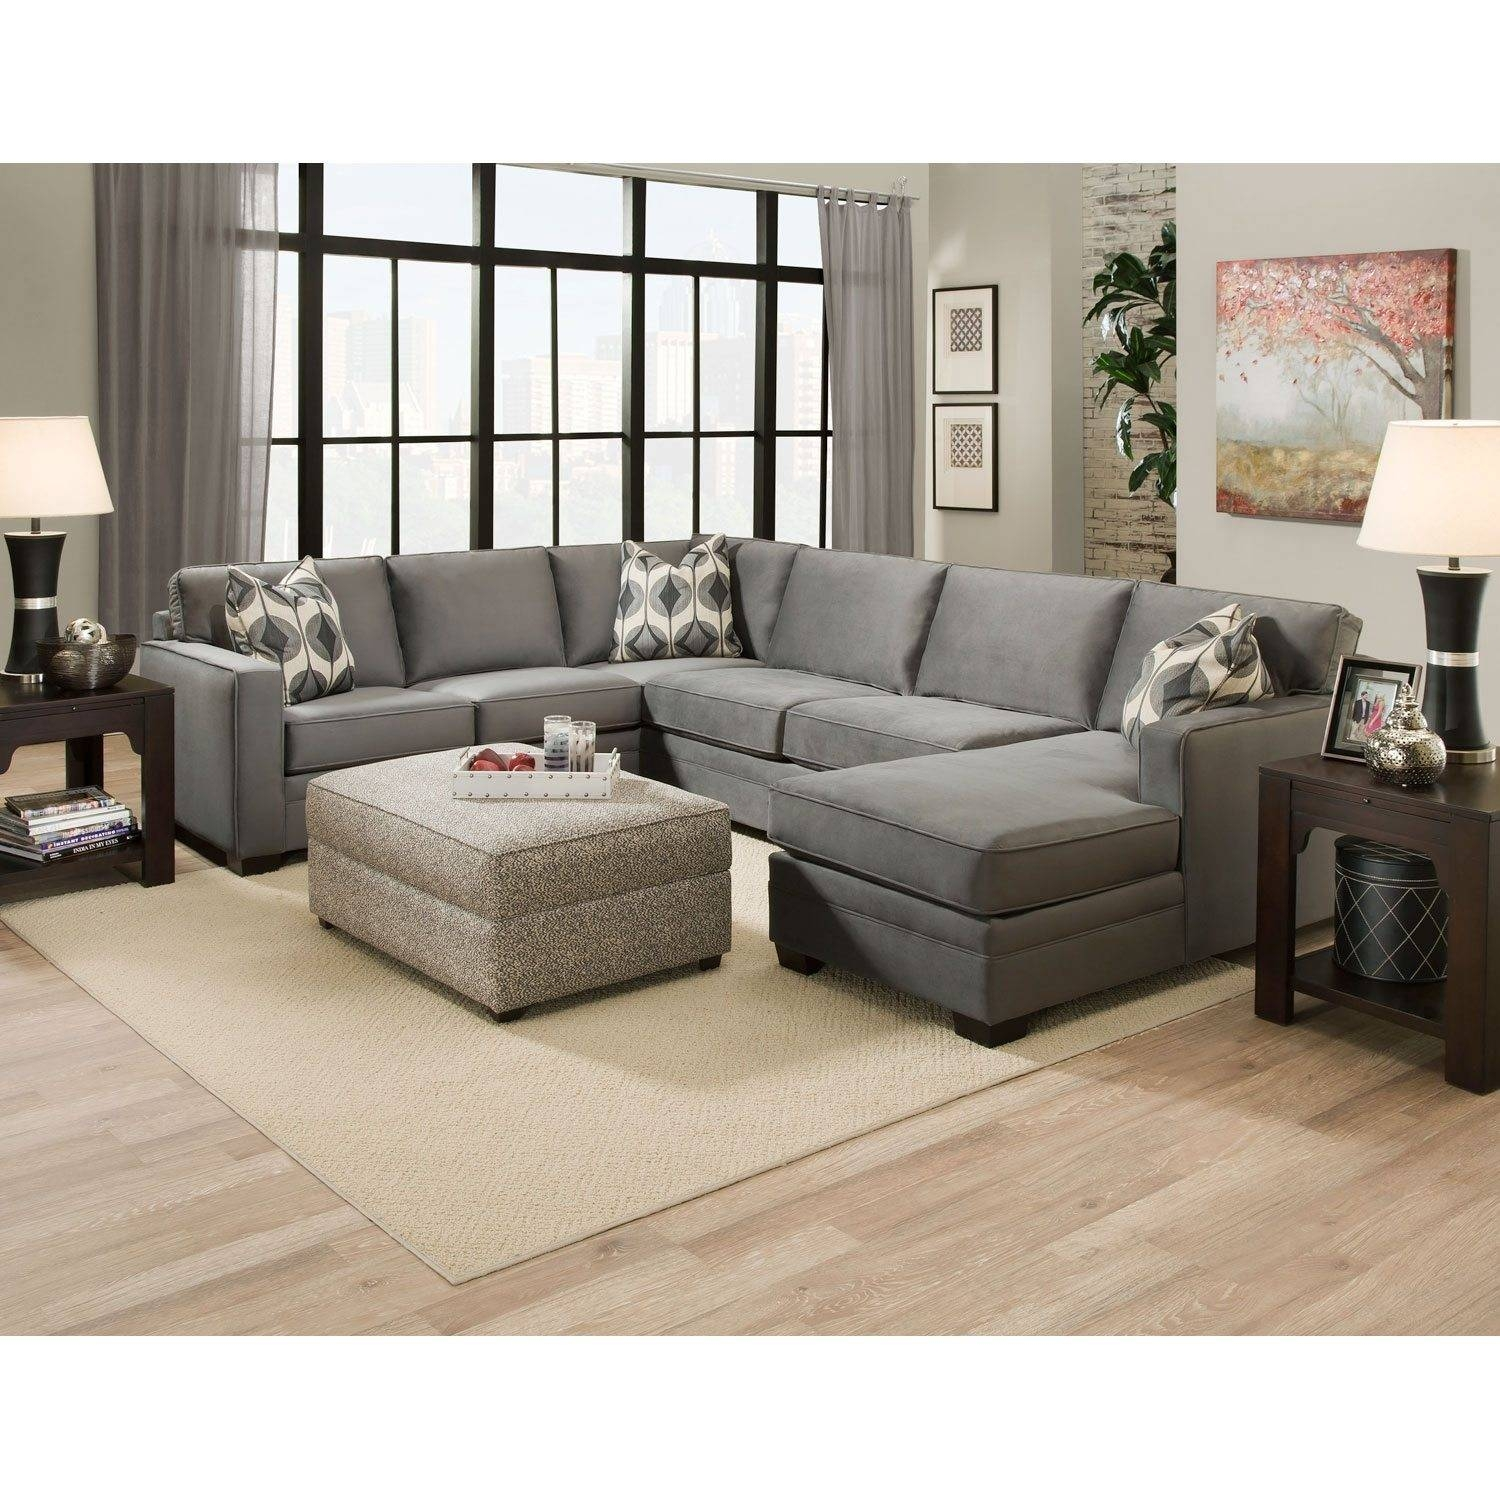 Furniture: Exciting Sectional Sofas Costco For Your Family Room inside Bauhaus Sectional Sofas (Image 21 of 30)